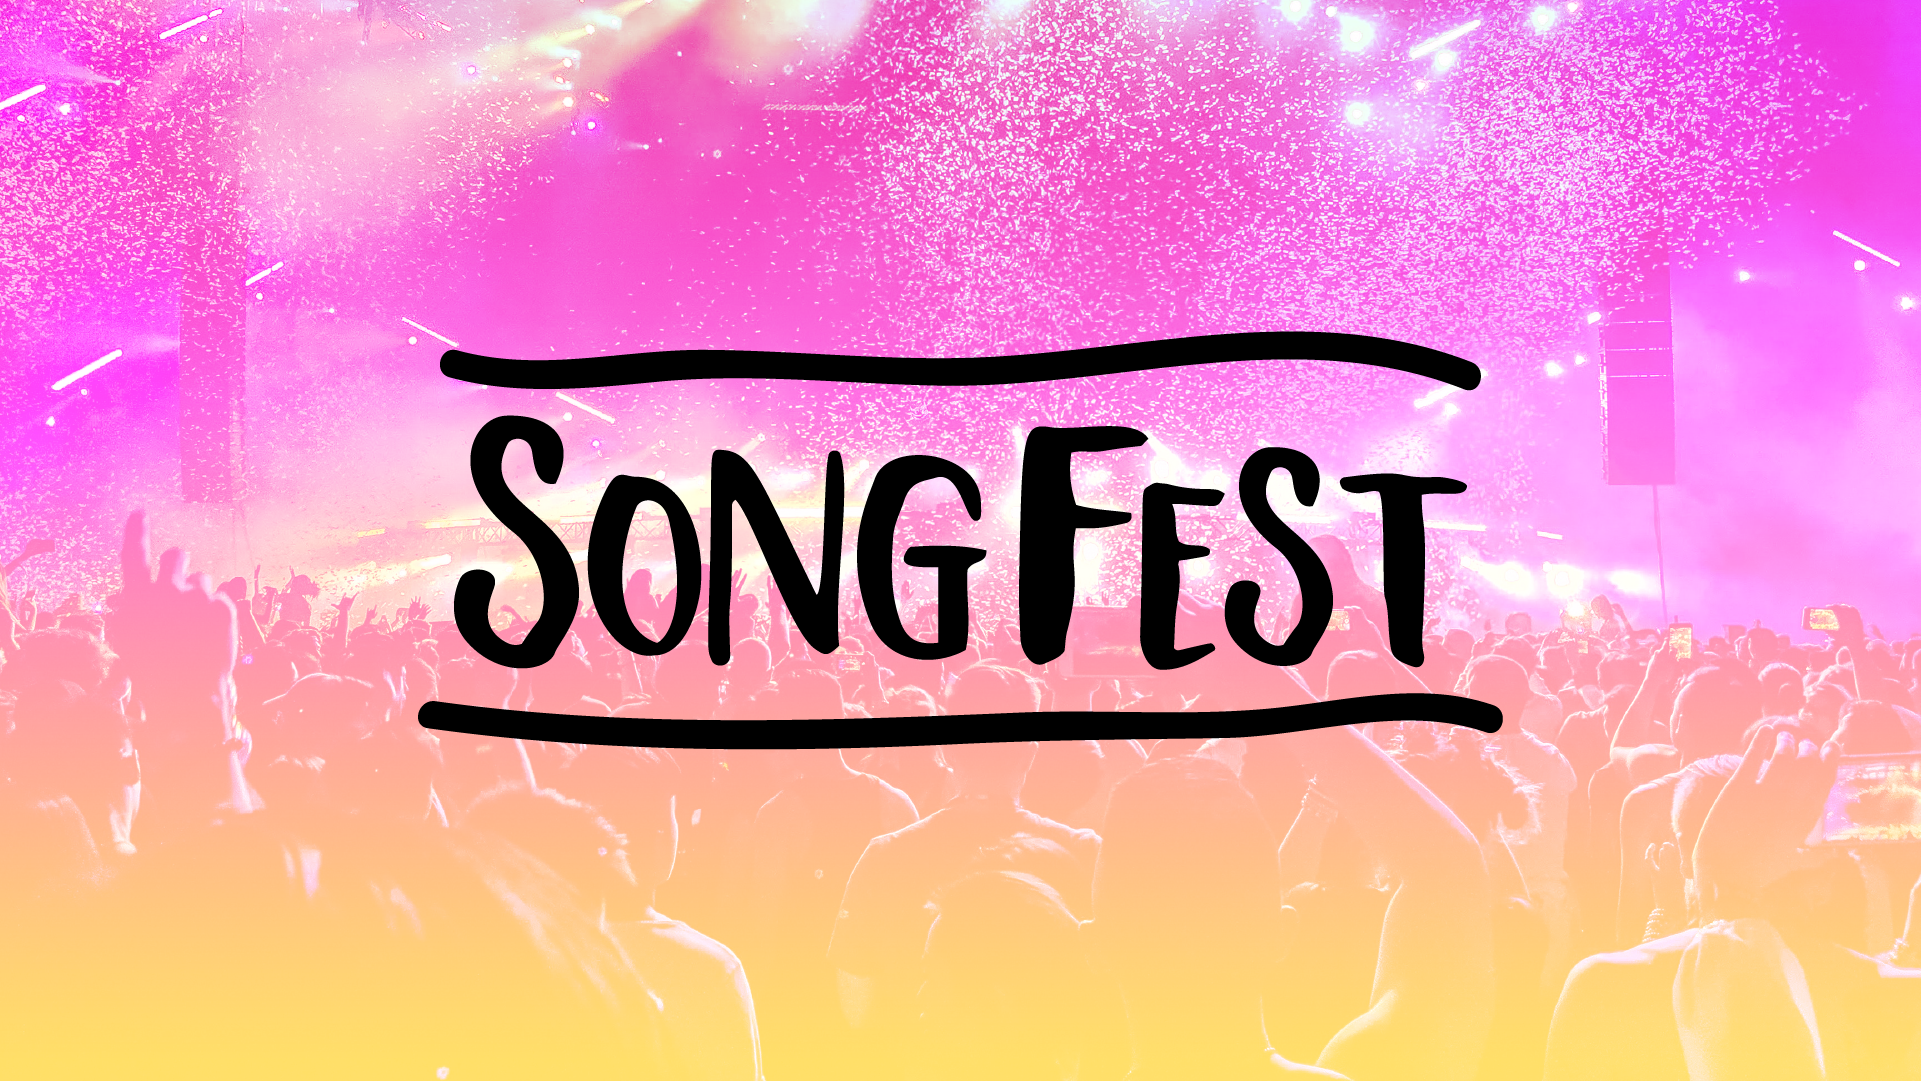 Song Fest_Sermon Graphics_Side Screen_1920x1080.png